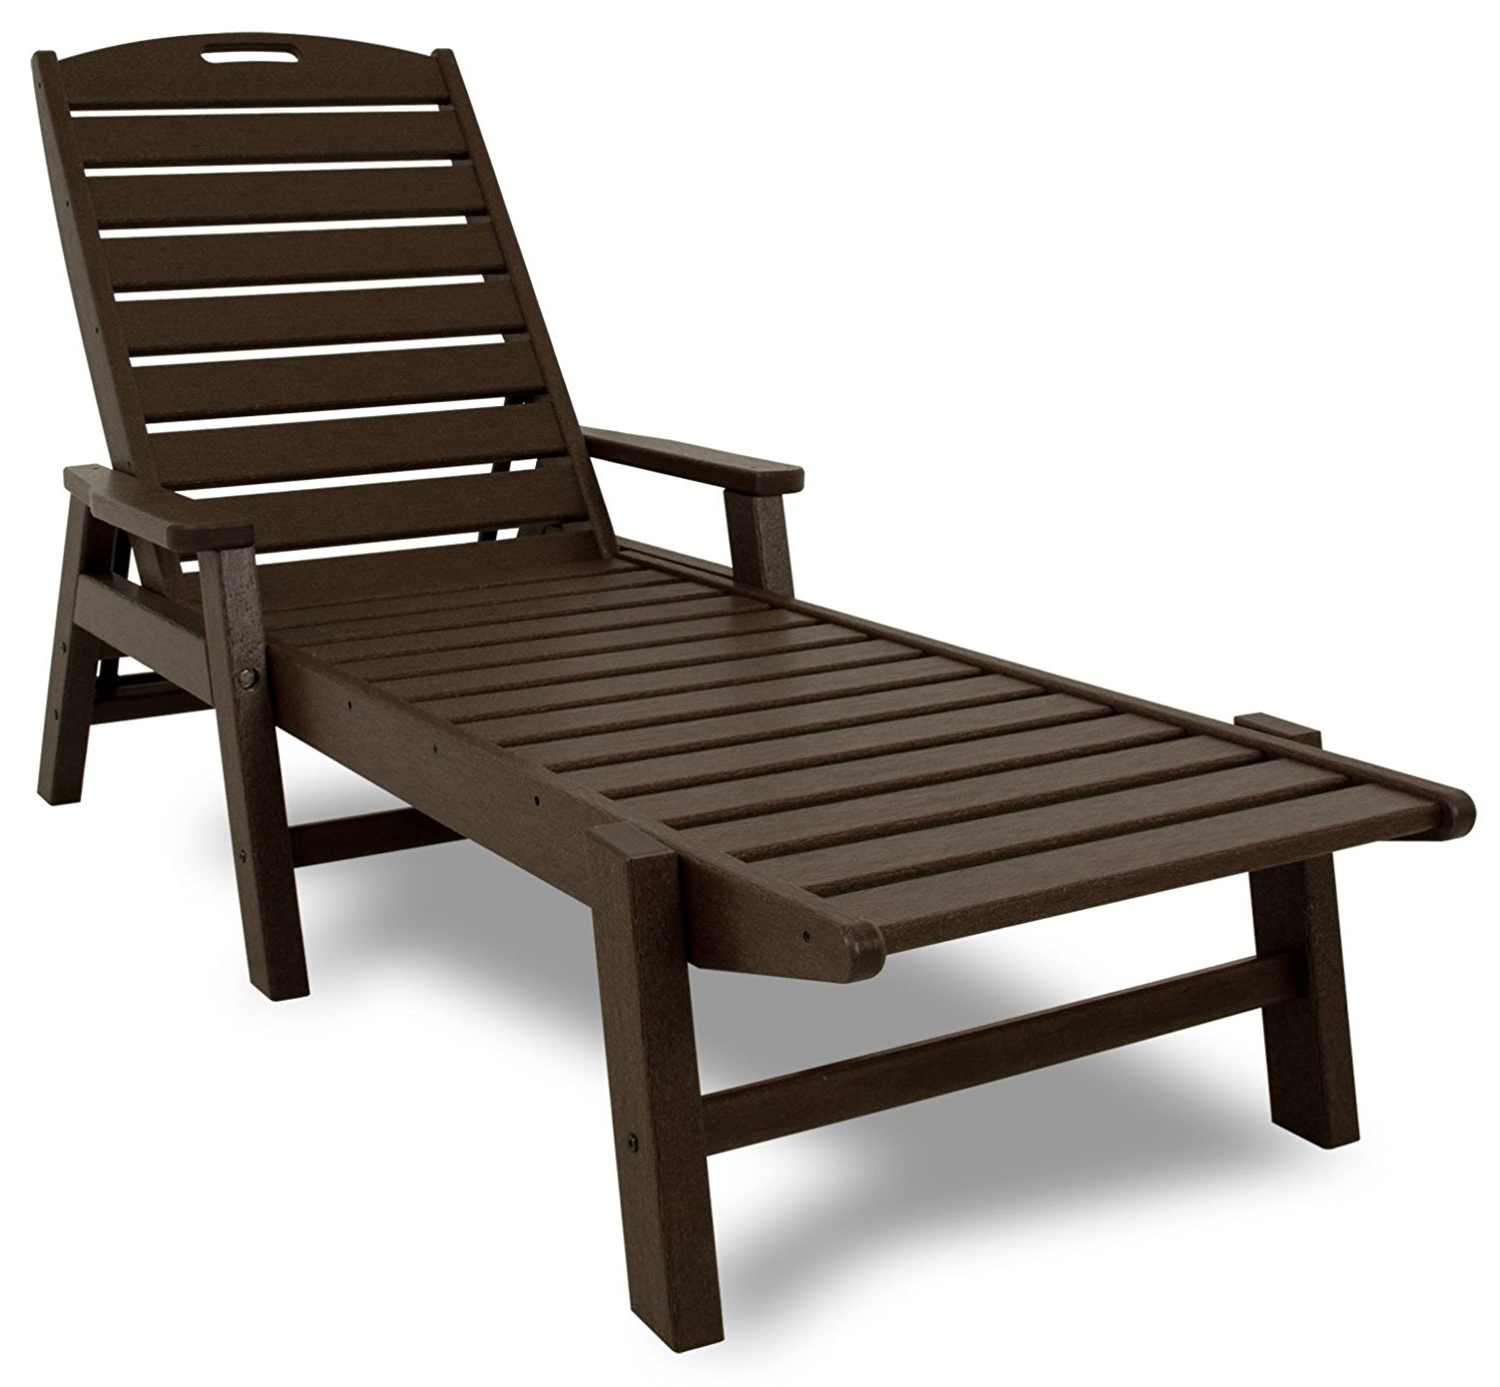 Amazon : Polywood Ncc2280Ma Nautical Chaise With Arms In Recent Outdoor Chaise Lounge Chairs With Arms (View 1 of 15)